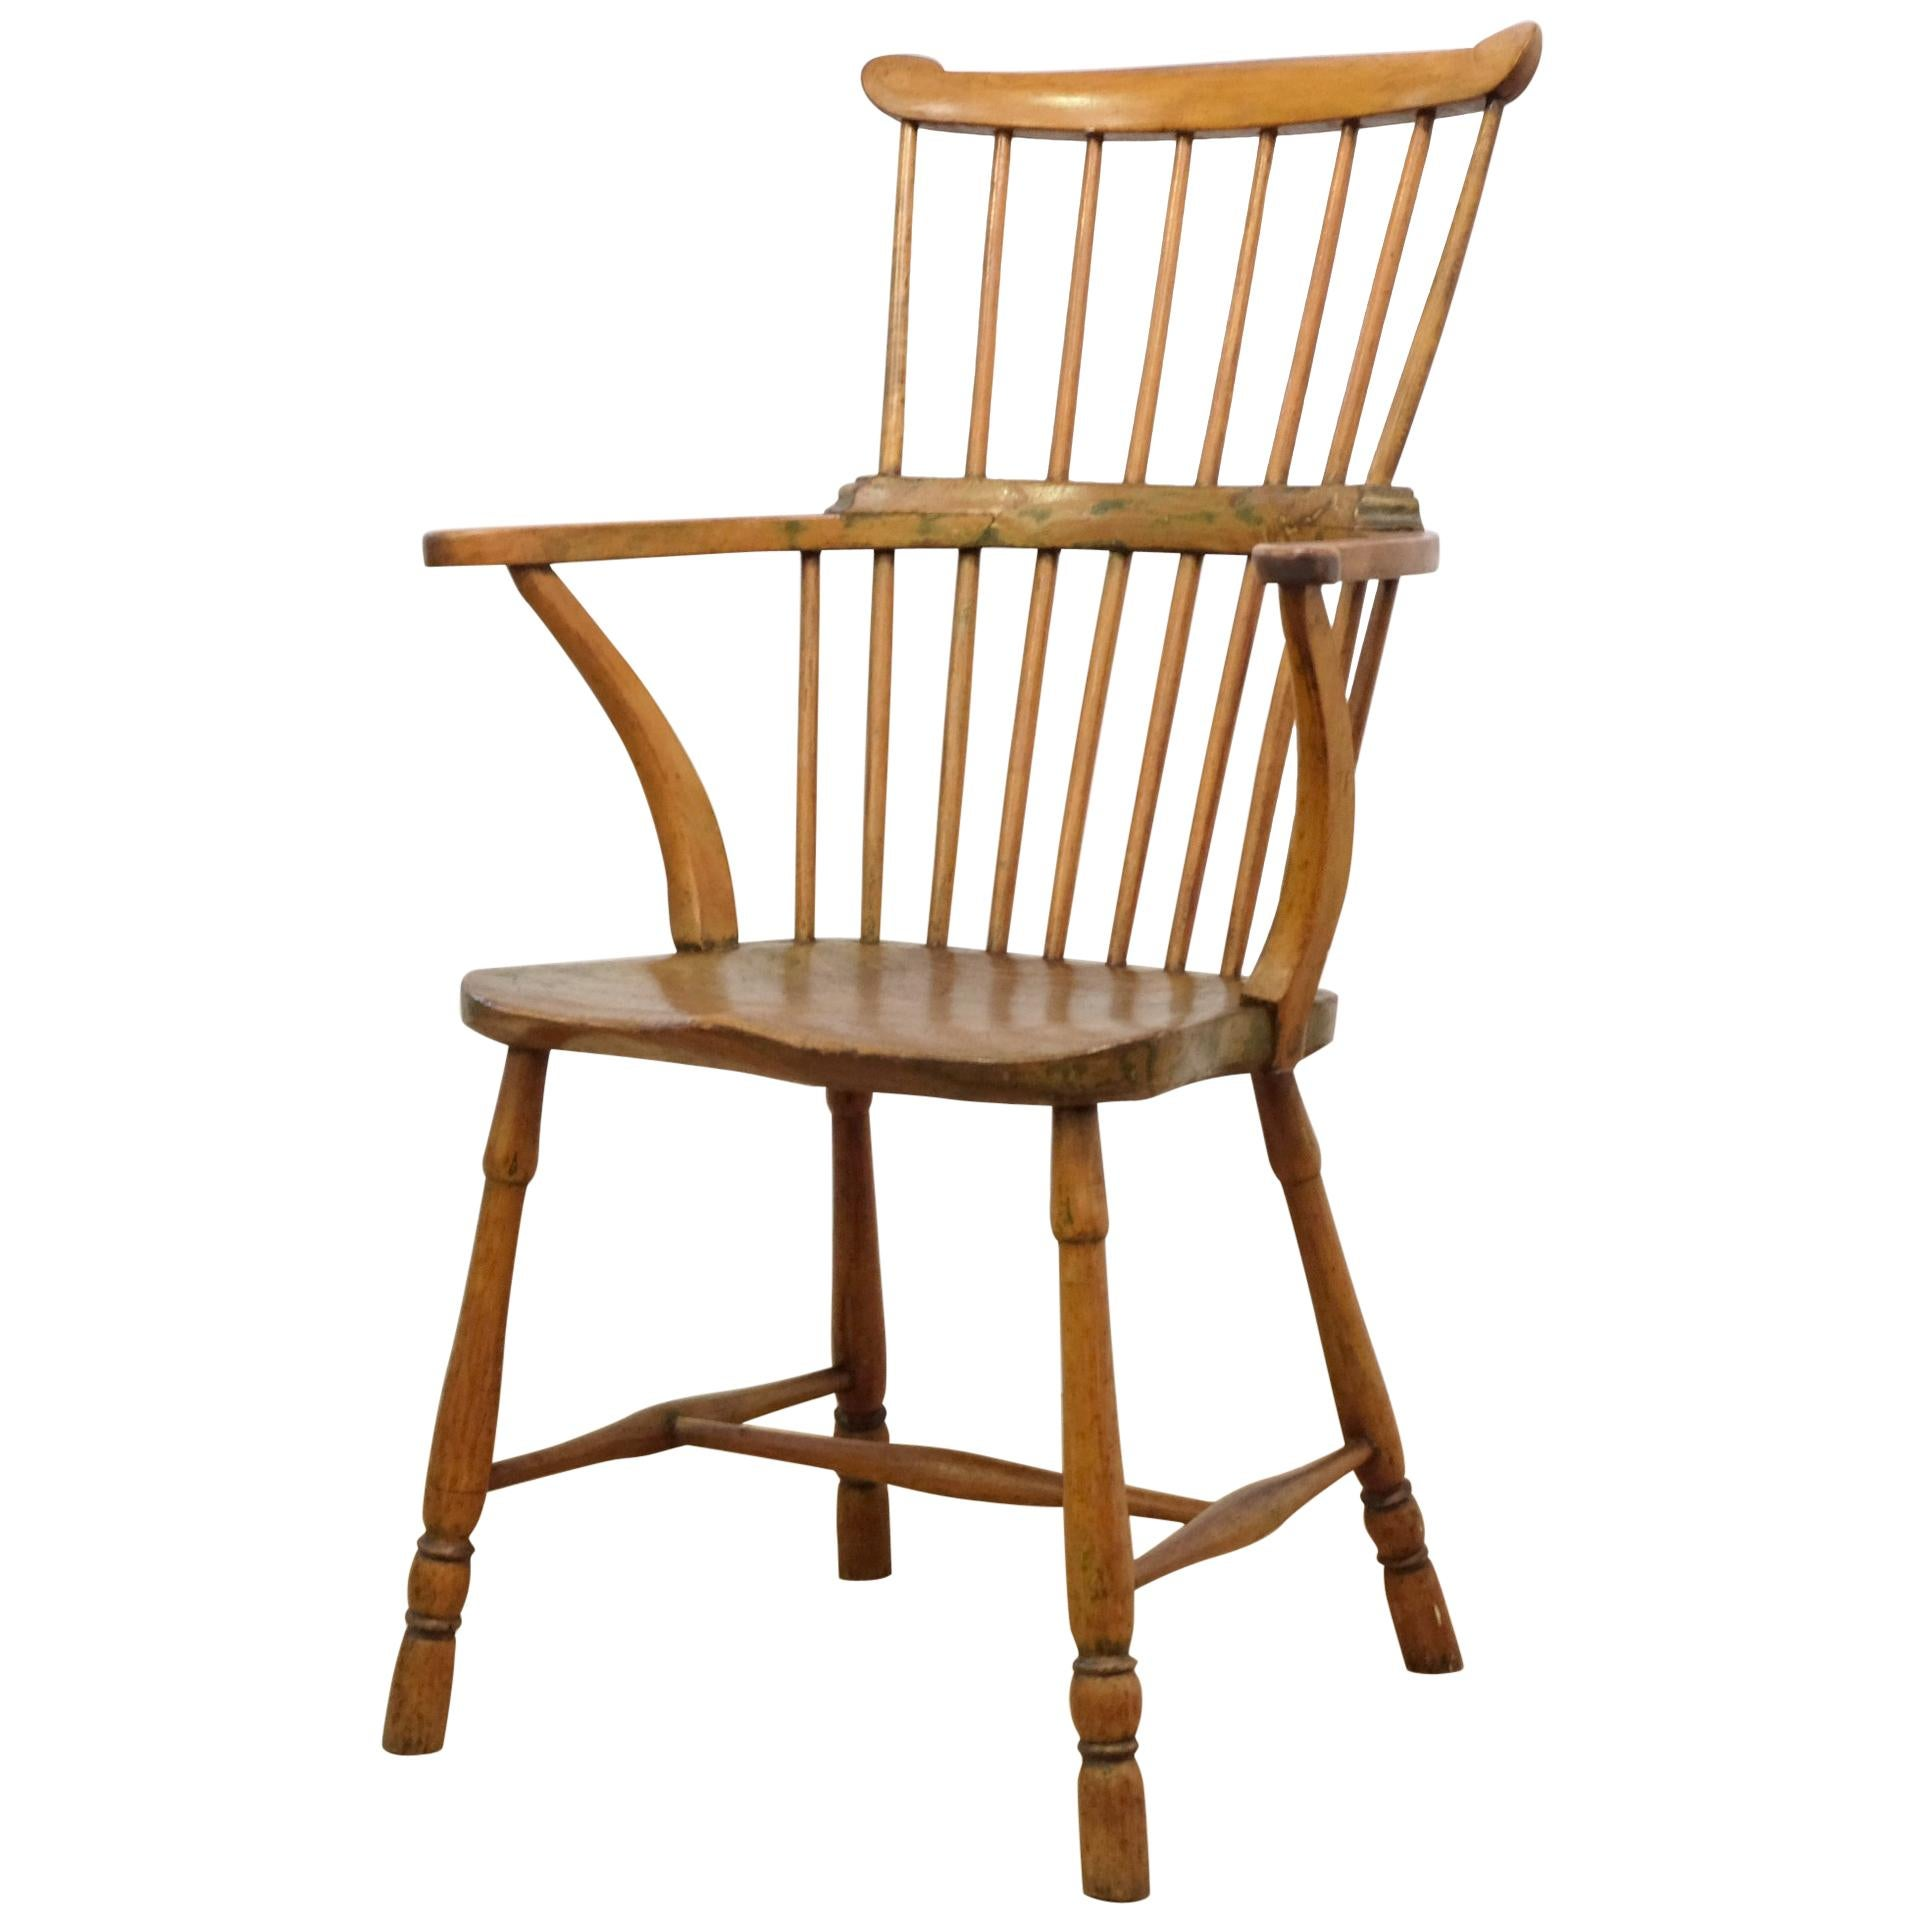 antique windsor chairs industrial style and vintage 157 for sale at 1stdibs 18th century english elm beech provincial comb back chair